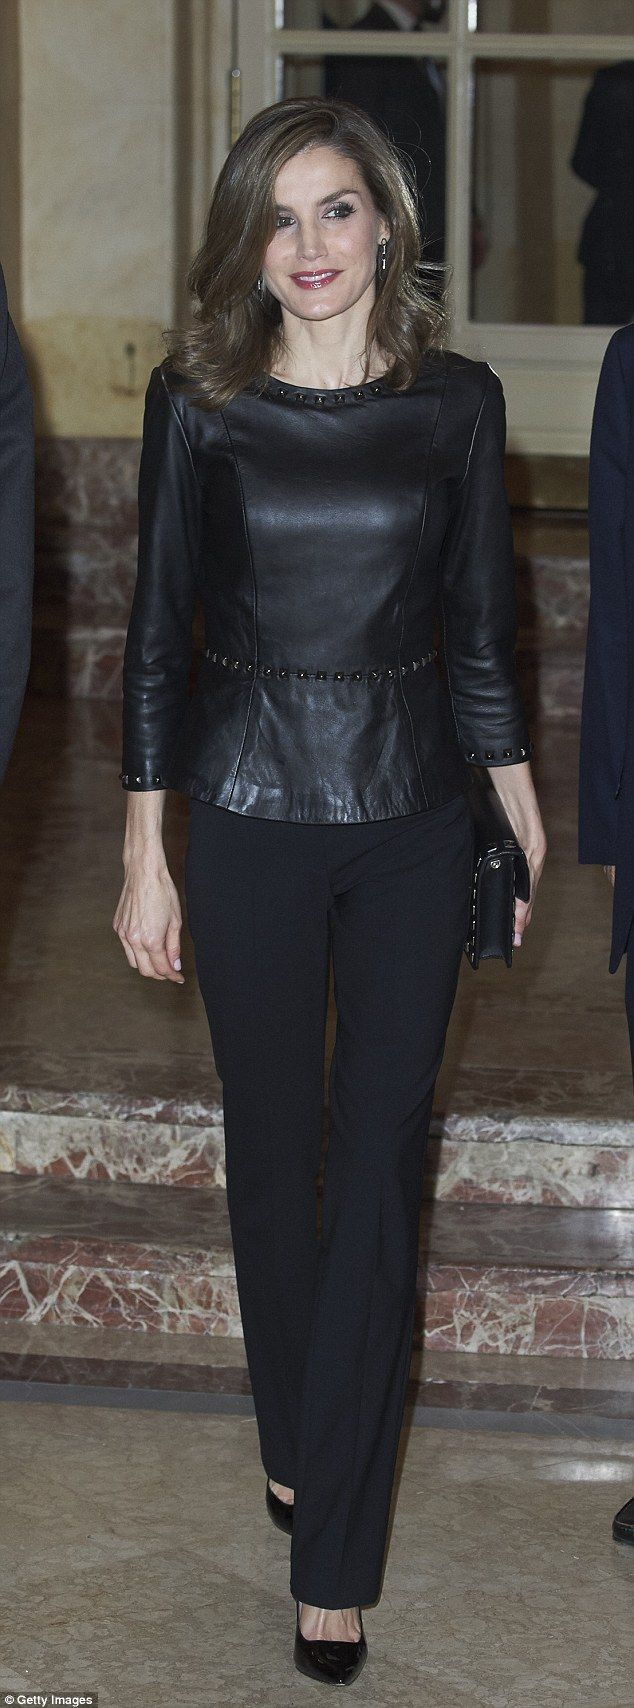 Queen Letizia of Spain, 44, showed off her more edgy side in a studded black leather peplu...